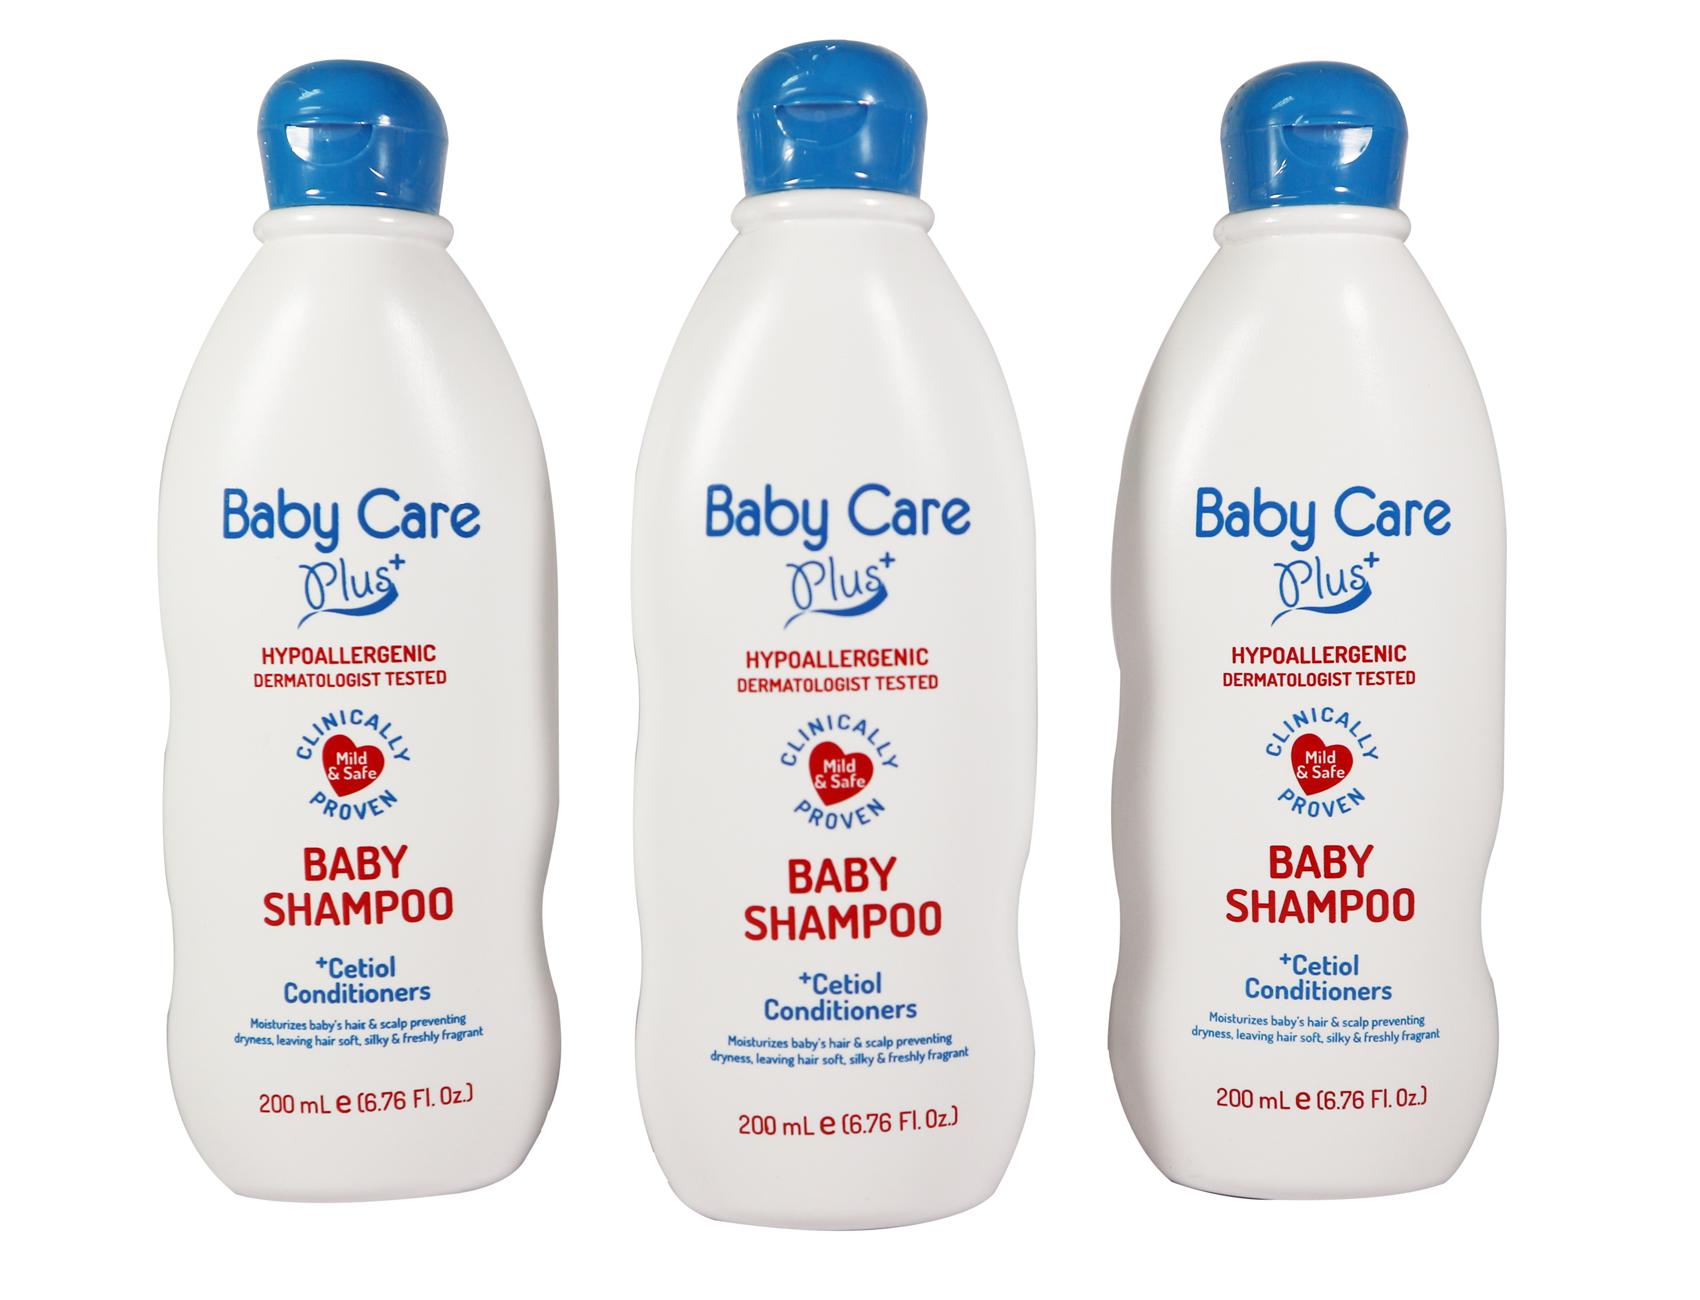 Baby Care Plus Baby Shampoo Set of 3 200mL